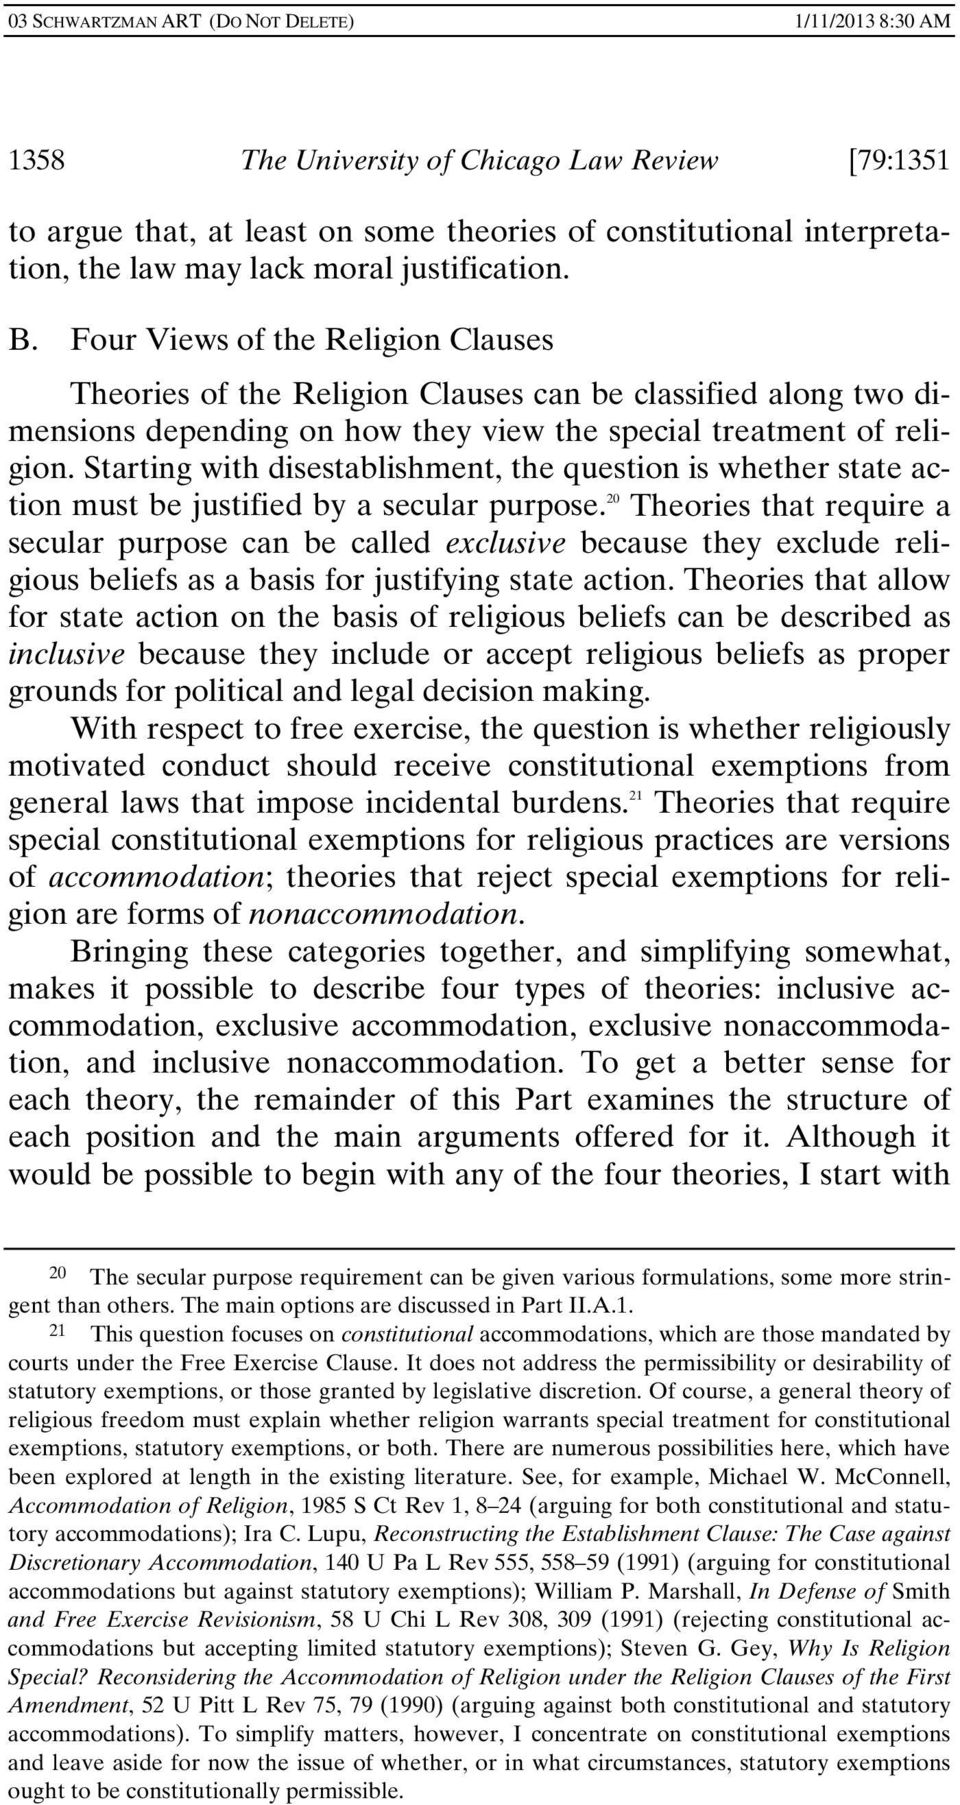 Starting with disestablishment, the question is whether state action must be justified by a secular purpose.